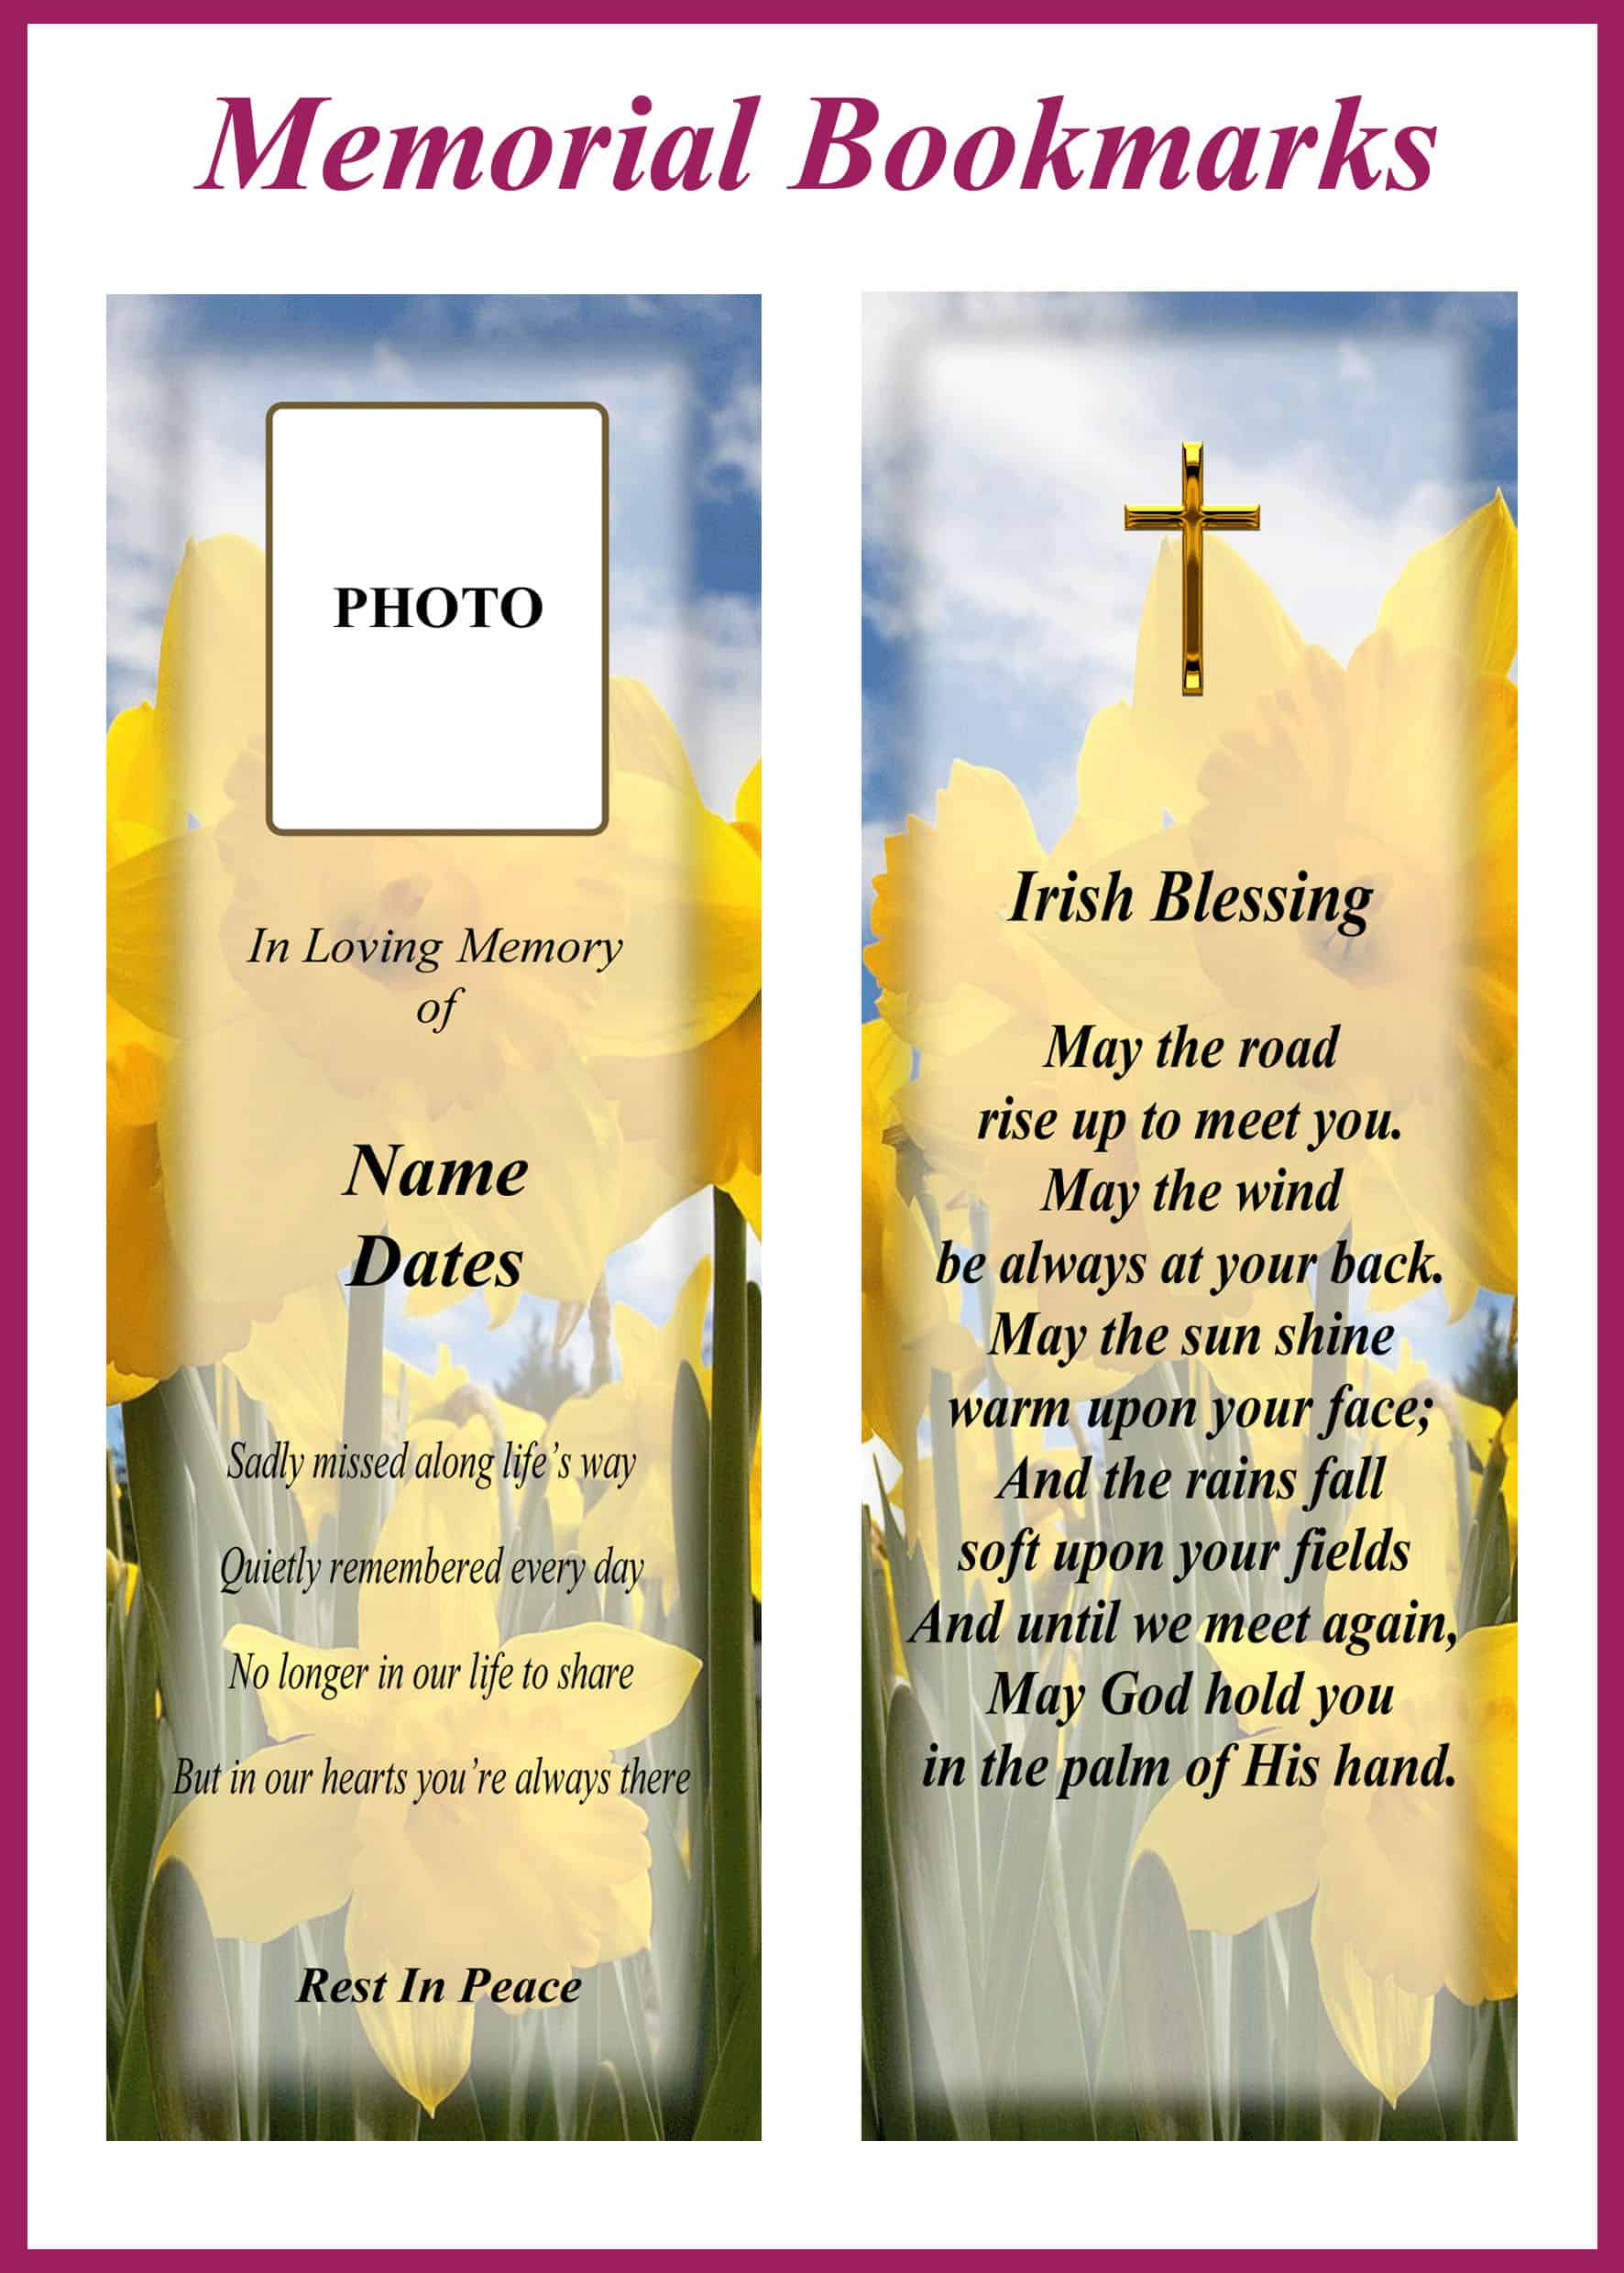 Memorial Bookmarks Category Image